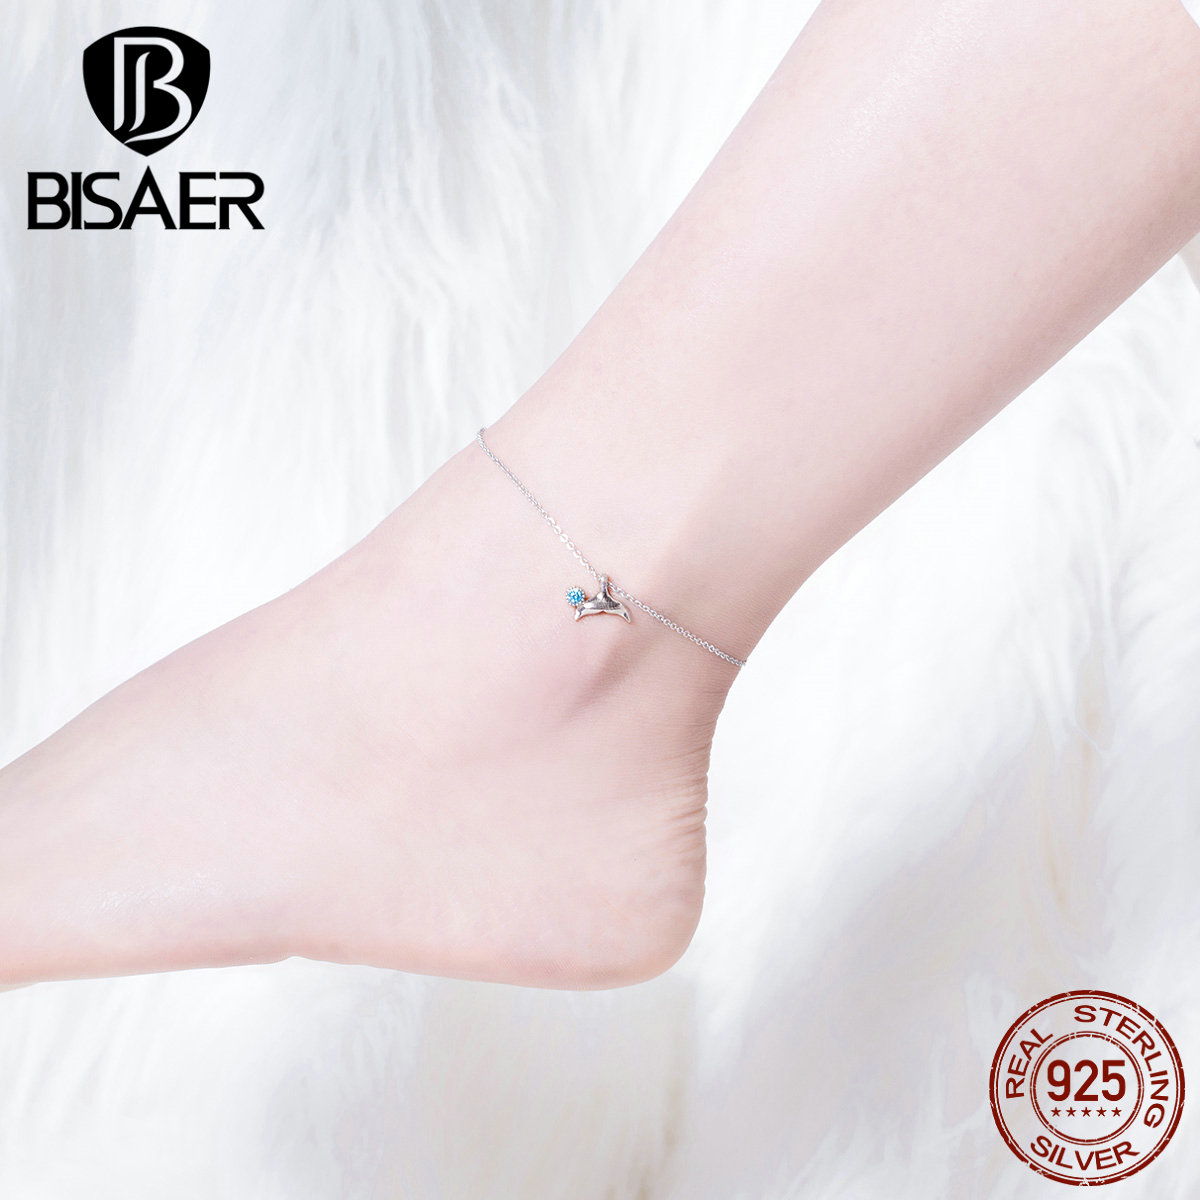 BISAER Mermaid Anklets 925 Sterling Silver Mermaid's Story Chain Silver Anklets for Women Sterling Silver Jewelry ECT004 4